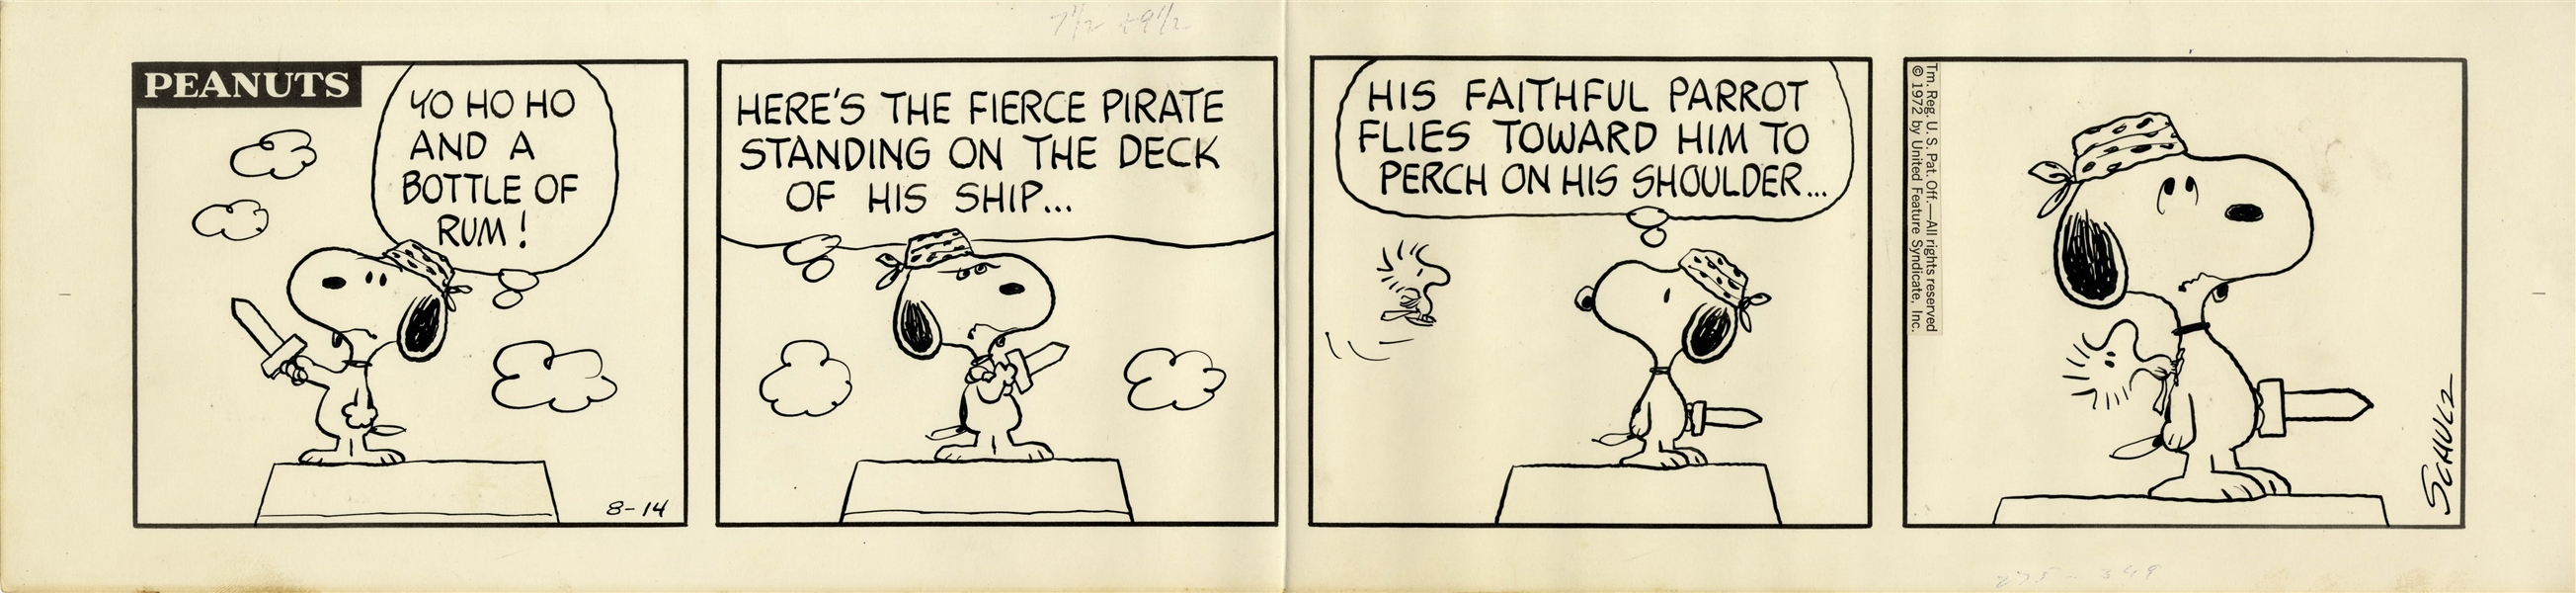 Snoopy Plays Pirate With Woodstock Helping in This 1972 Charles Schulz Hand-Drawn ''Peanuts'' Strip